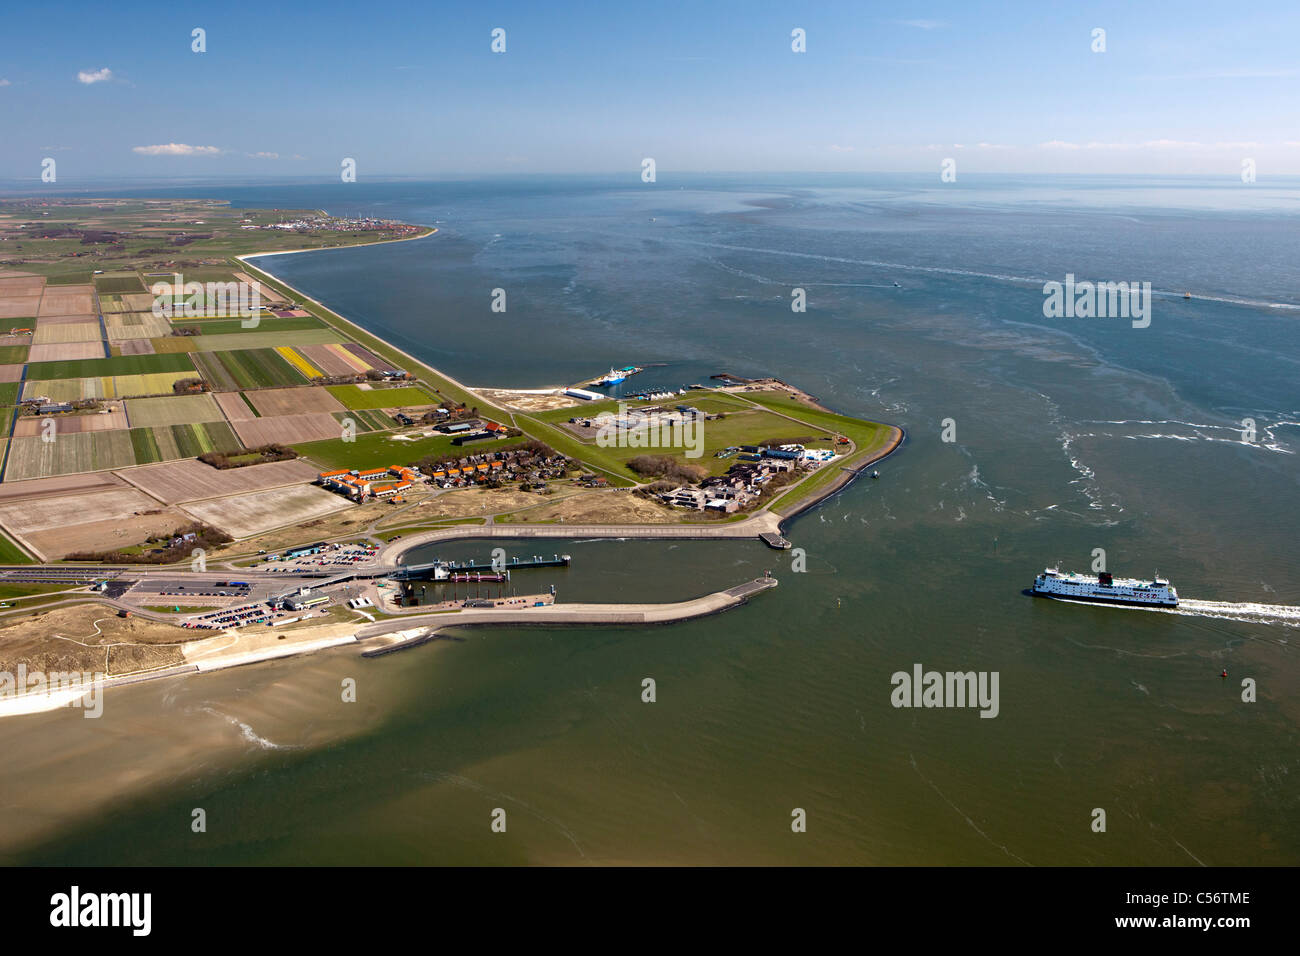 The Netherlands, Harbour and hamlet called Horntje on island called Texel. Aerial. Ferry boat arriving from Den - Stock Image